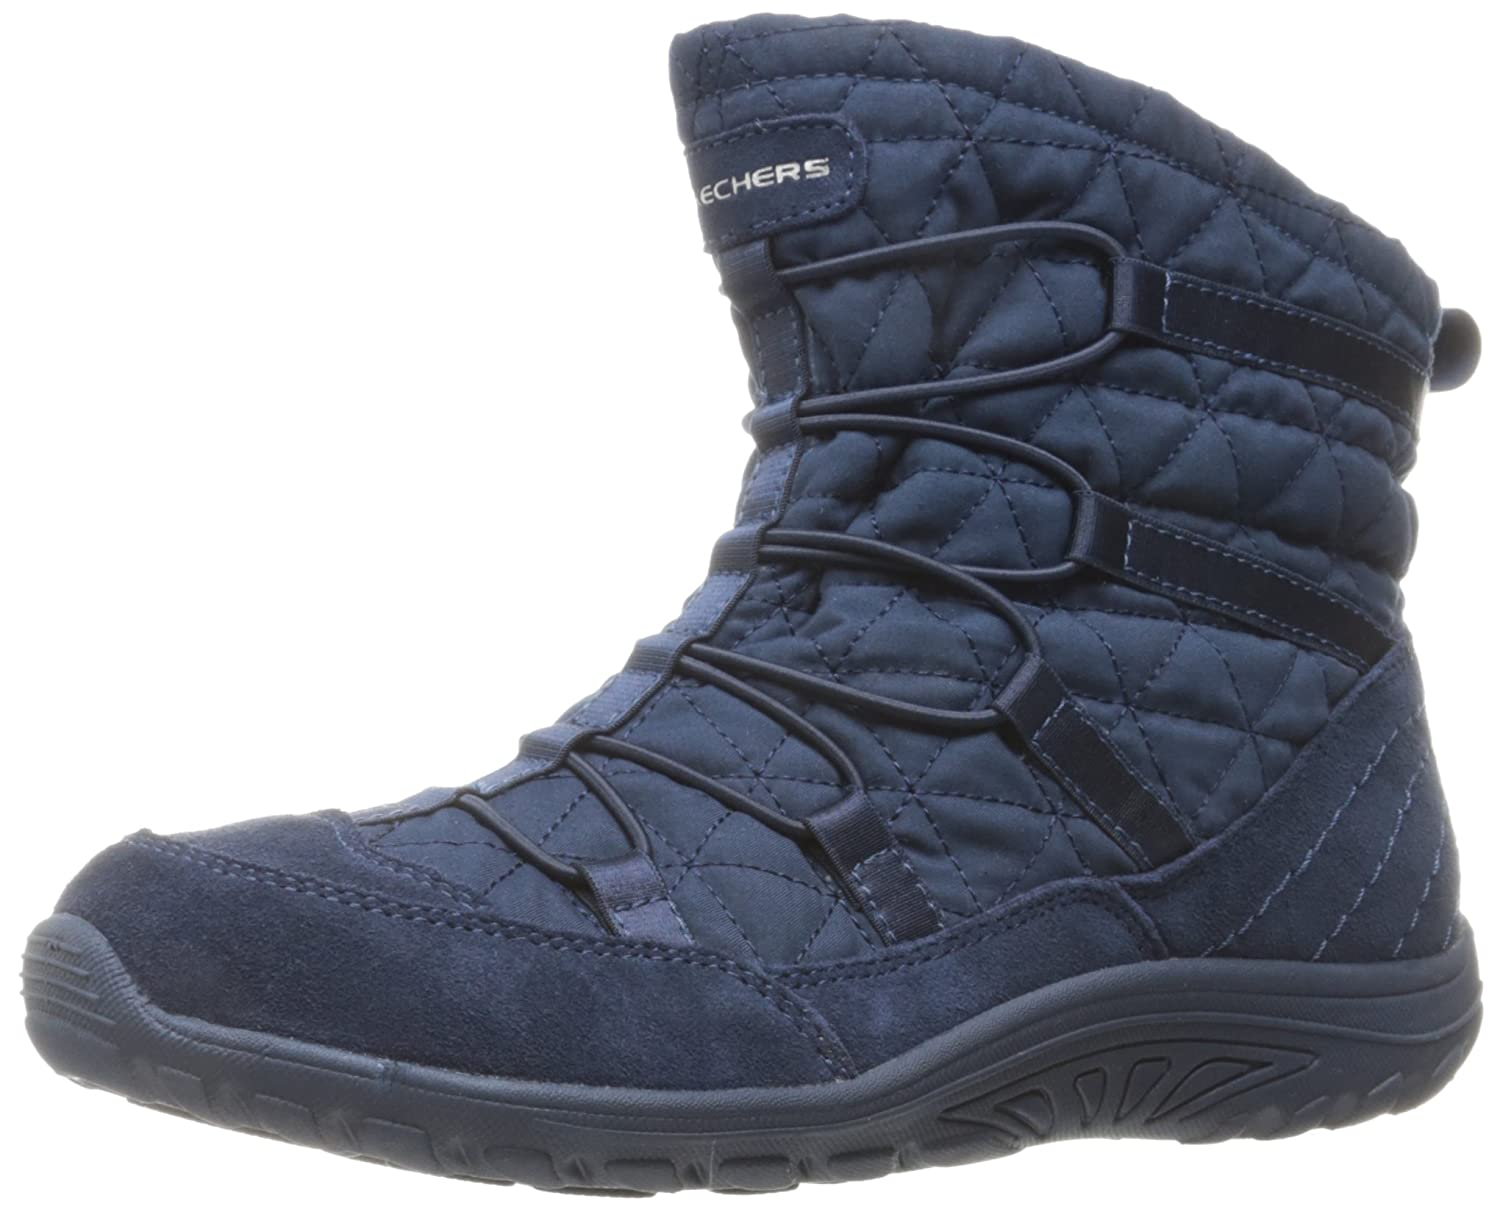 Skechers Womens Reggae Fest Steady Quilted Bungee Ankle Bootie  6.5 B(M) US|Navy